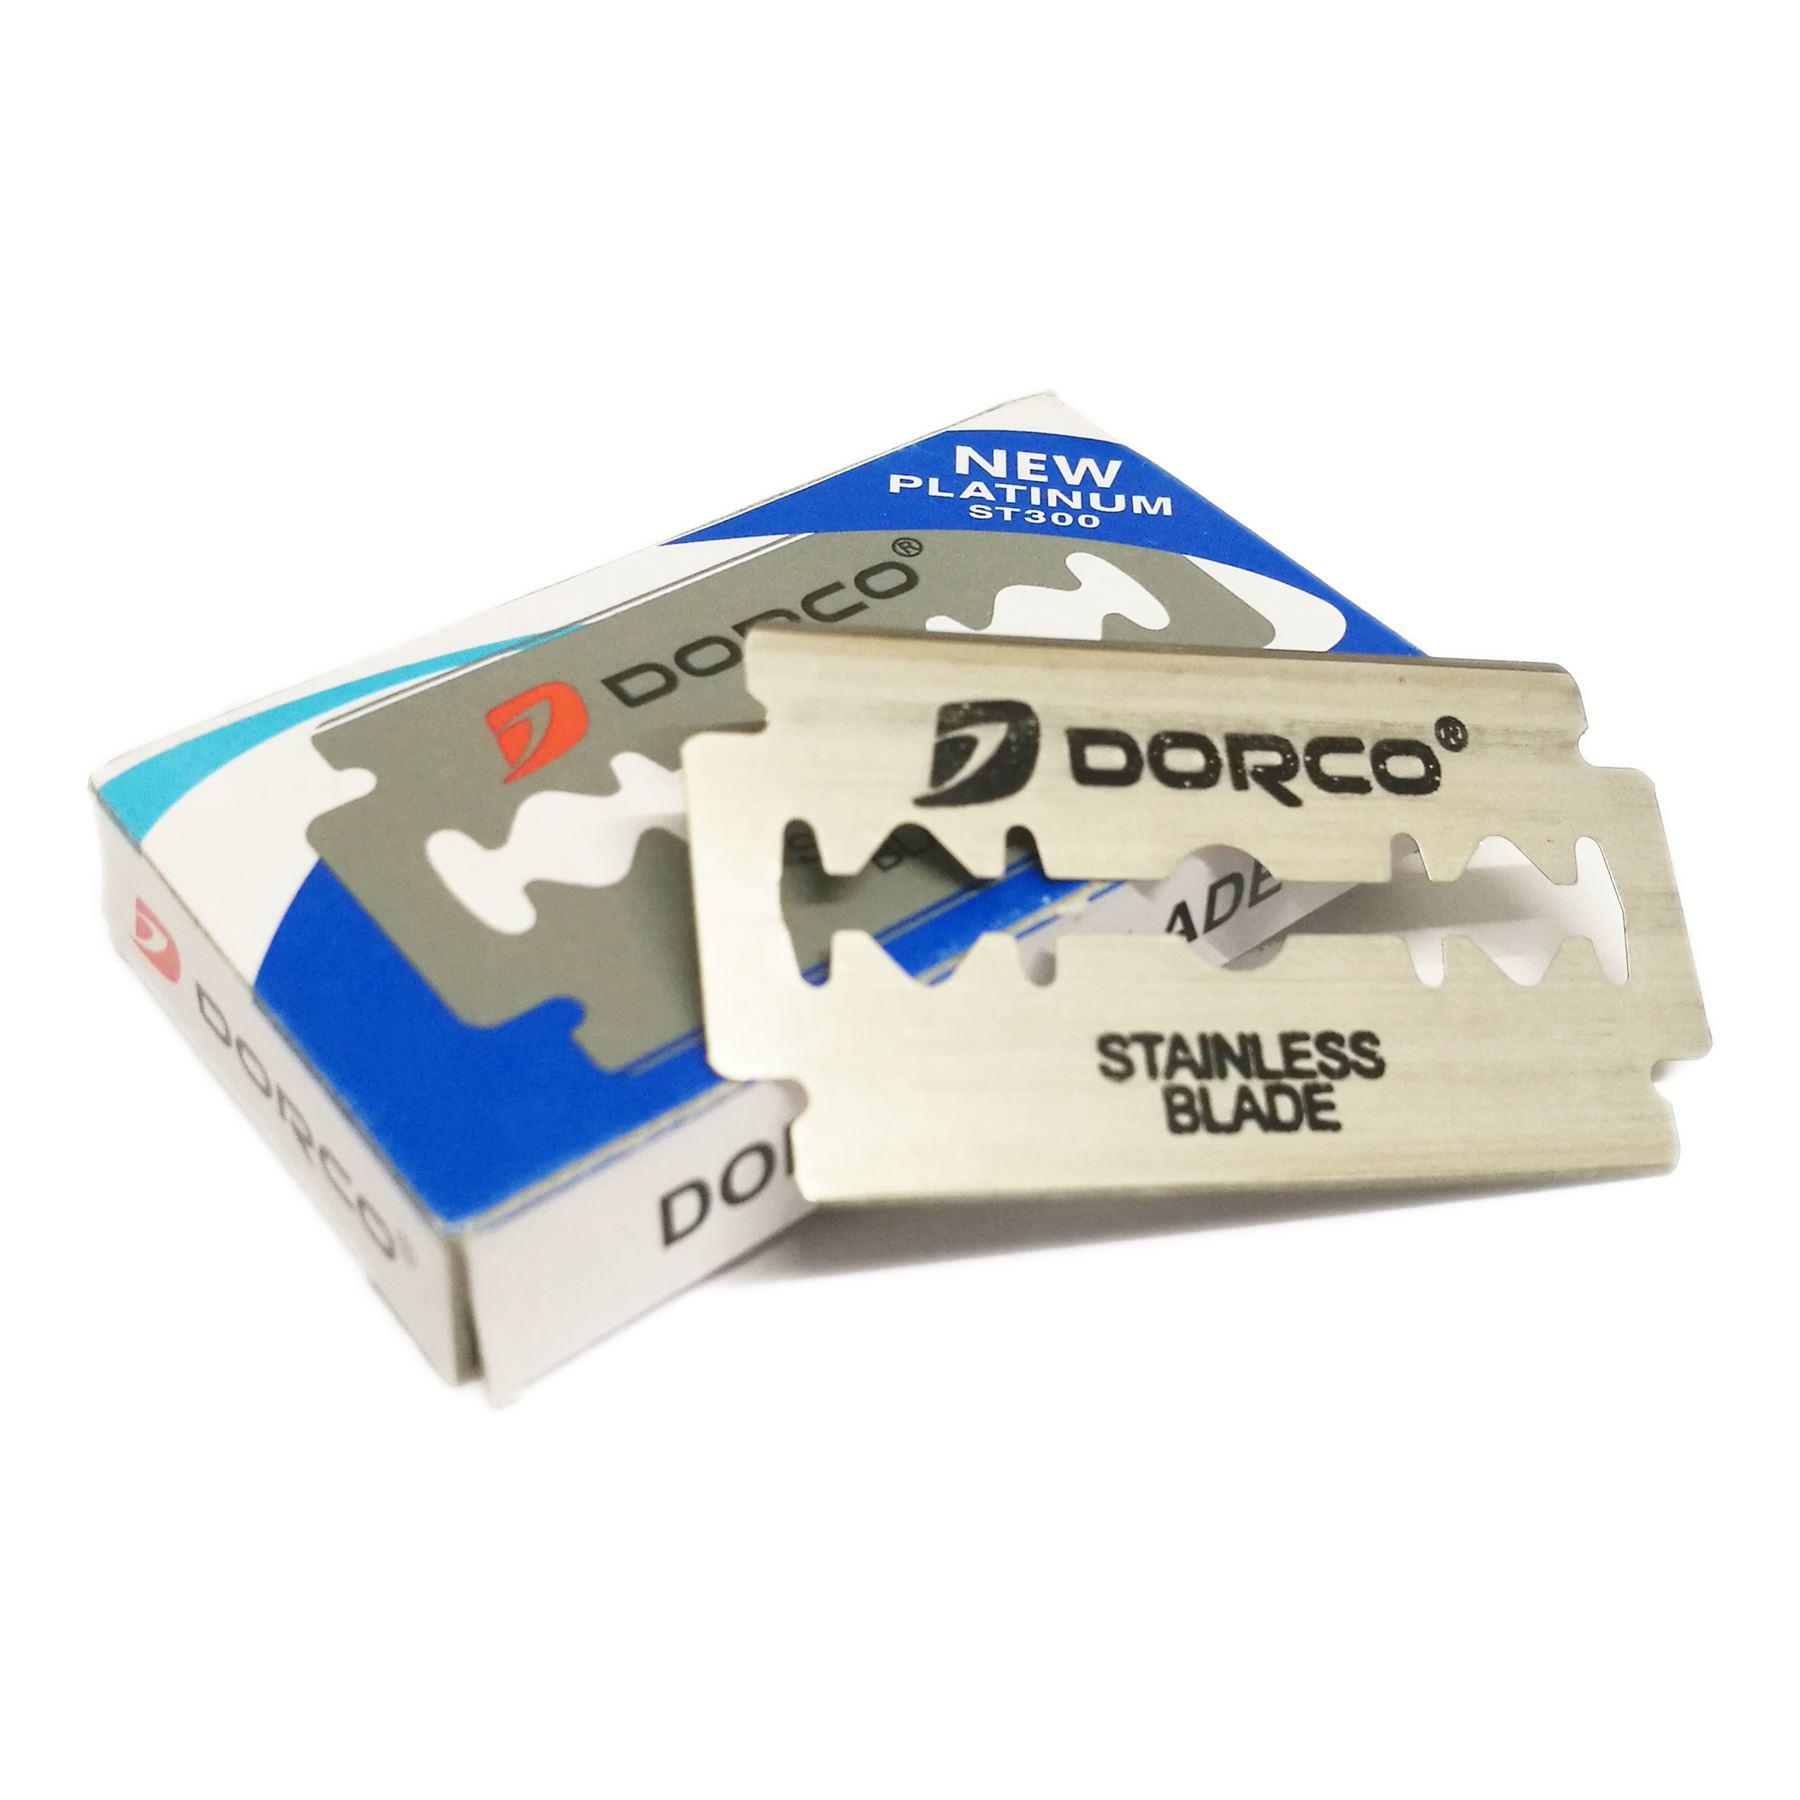 Dorco Platinum ST300 Double Edged Safety Razor Blades (10 Blades)